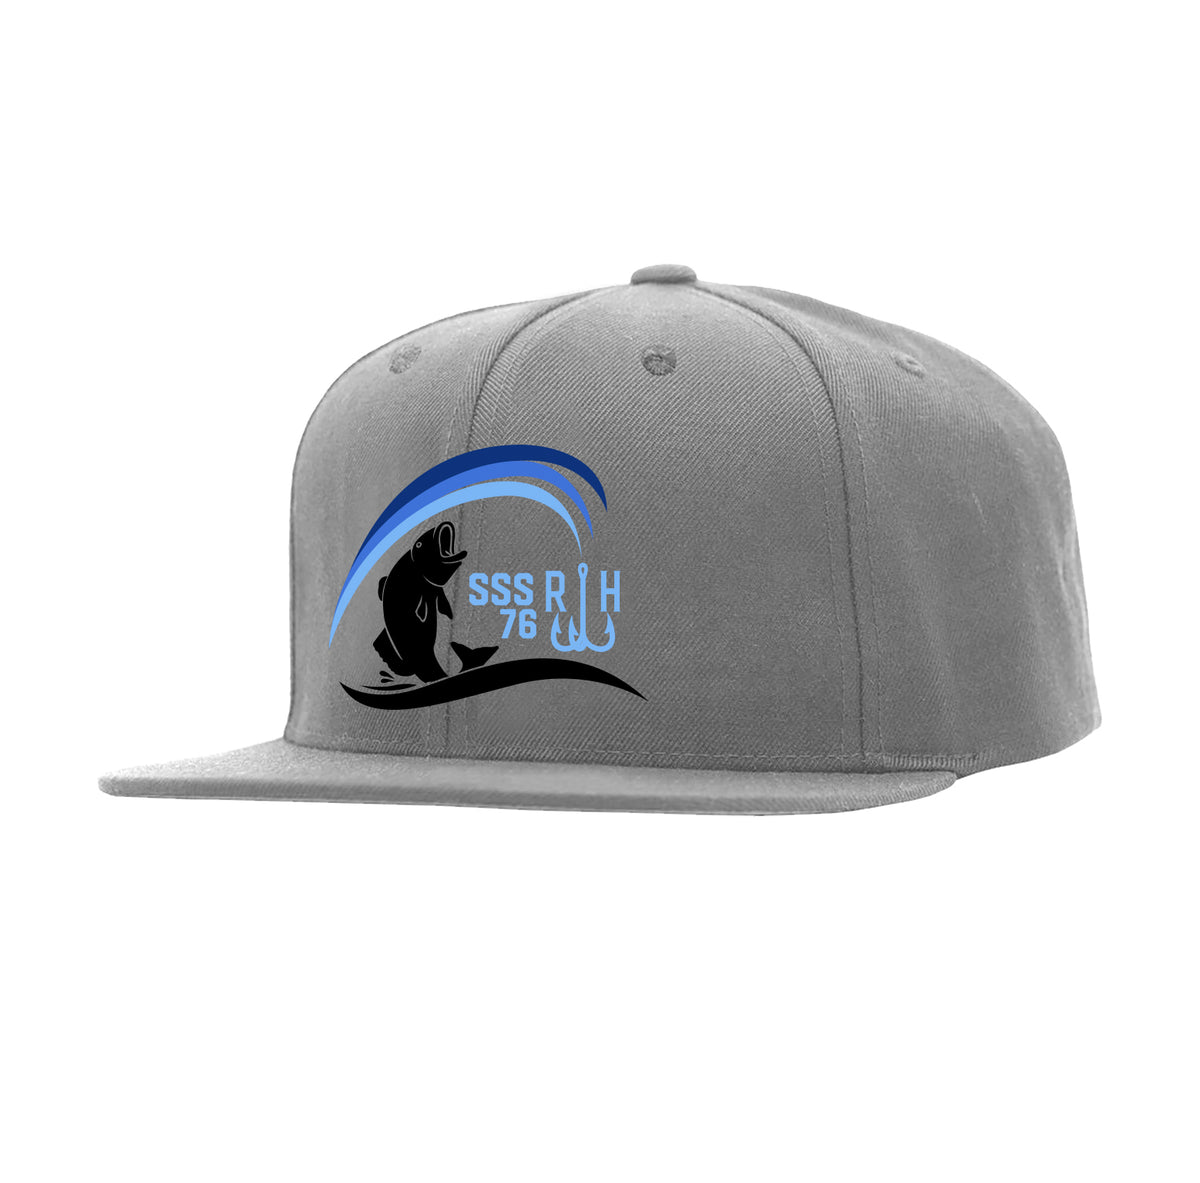 Outta Water Snapback Hat - Grey - Reel Happy Co